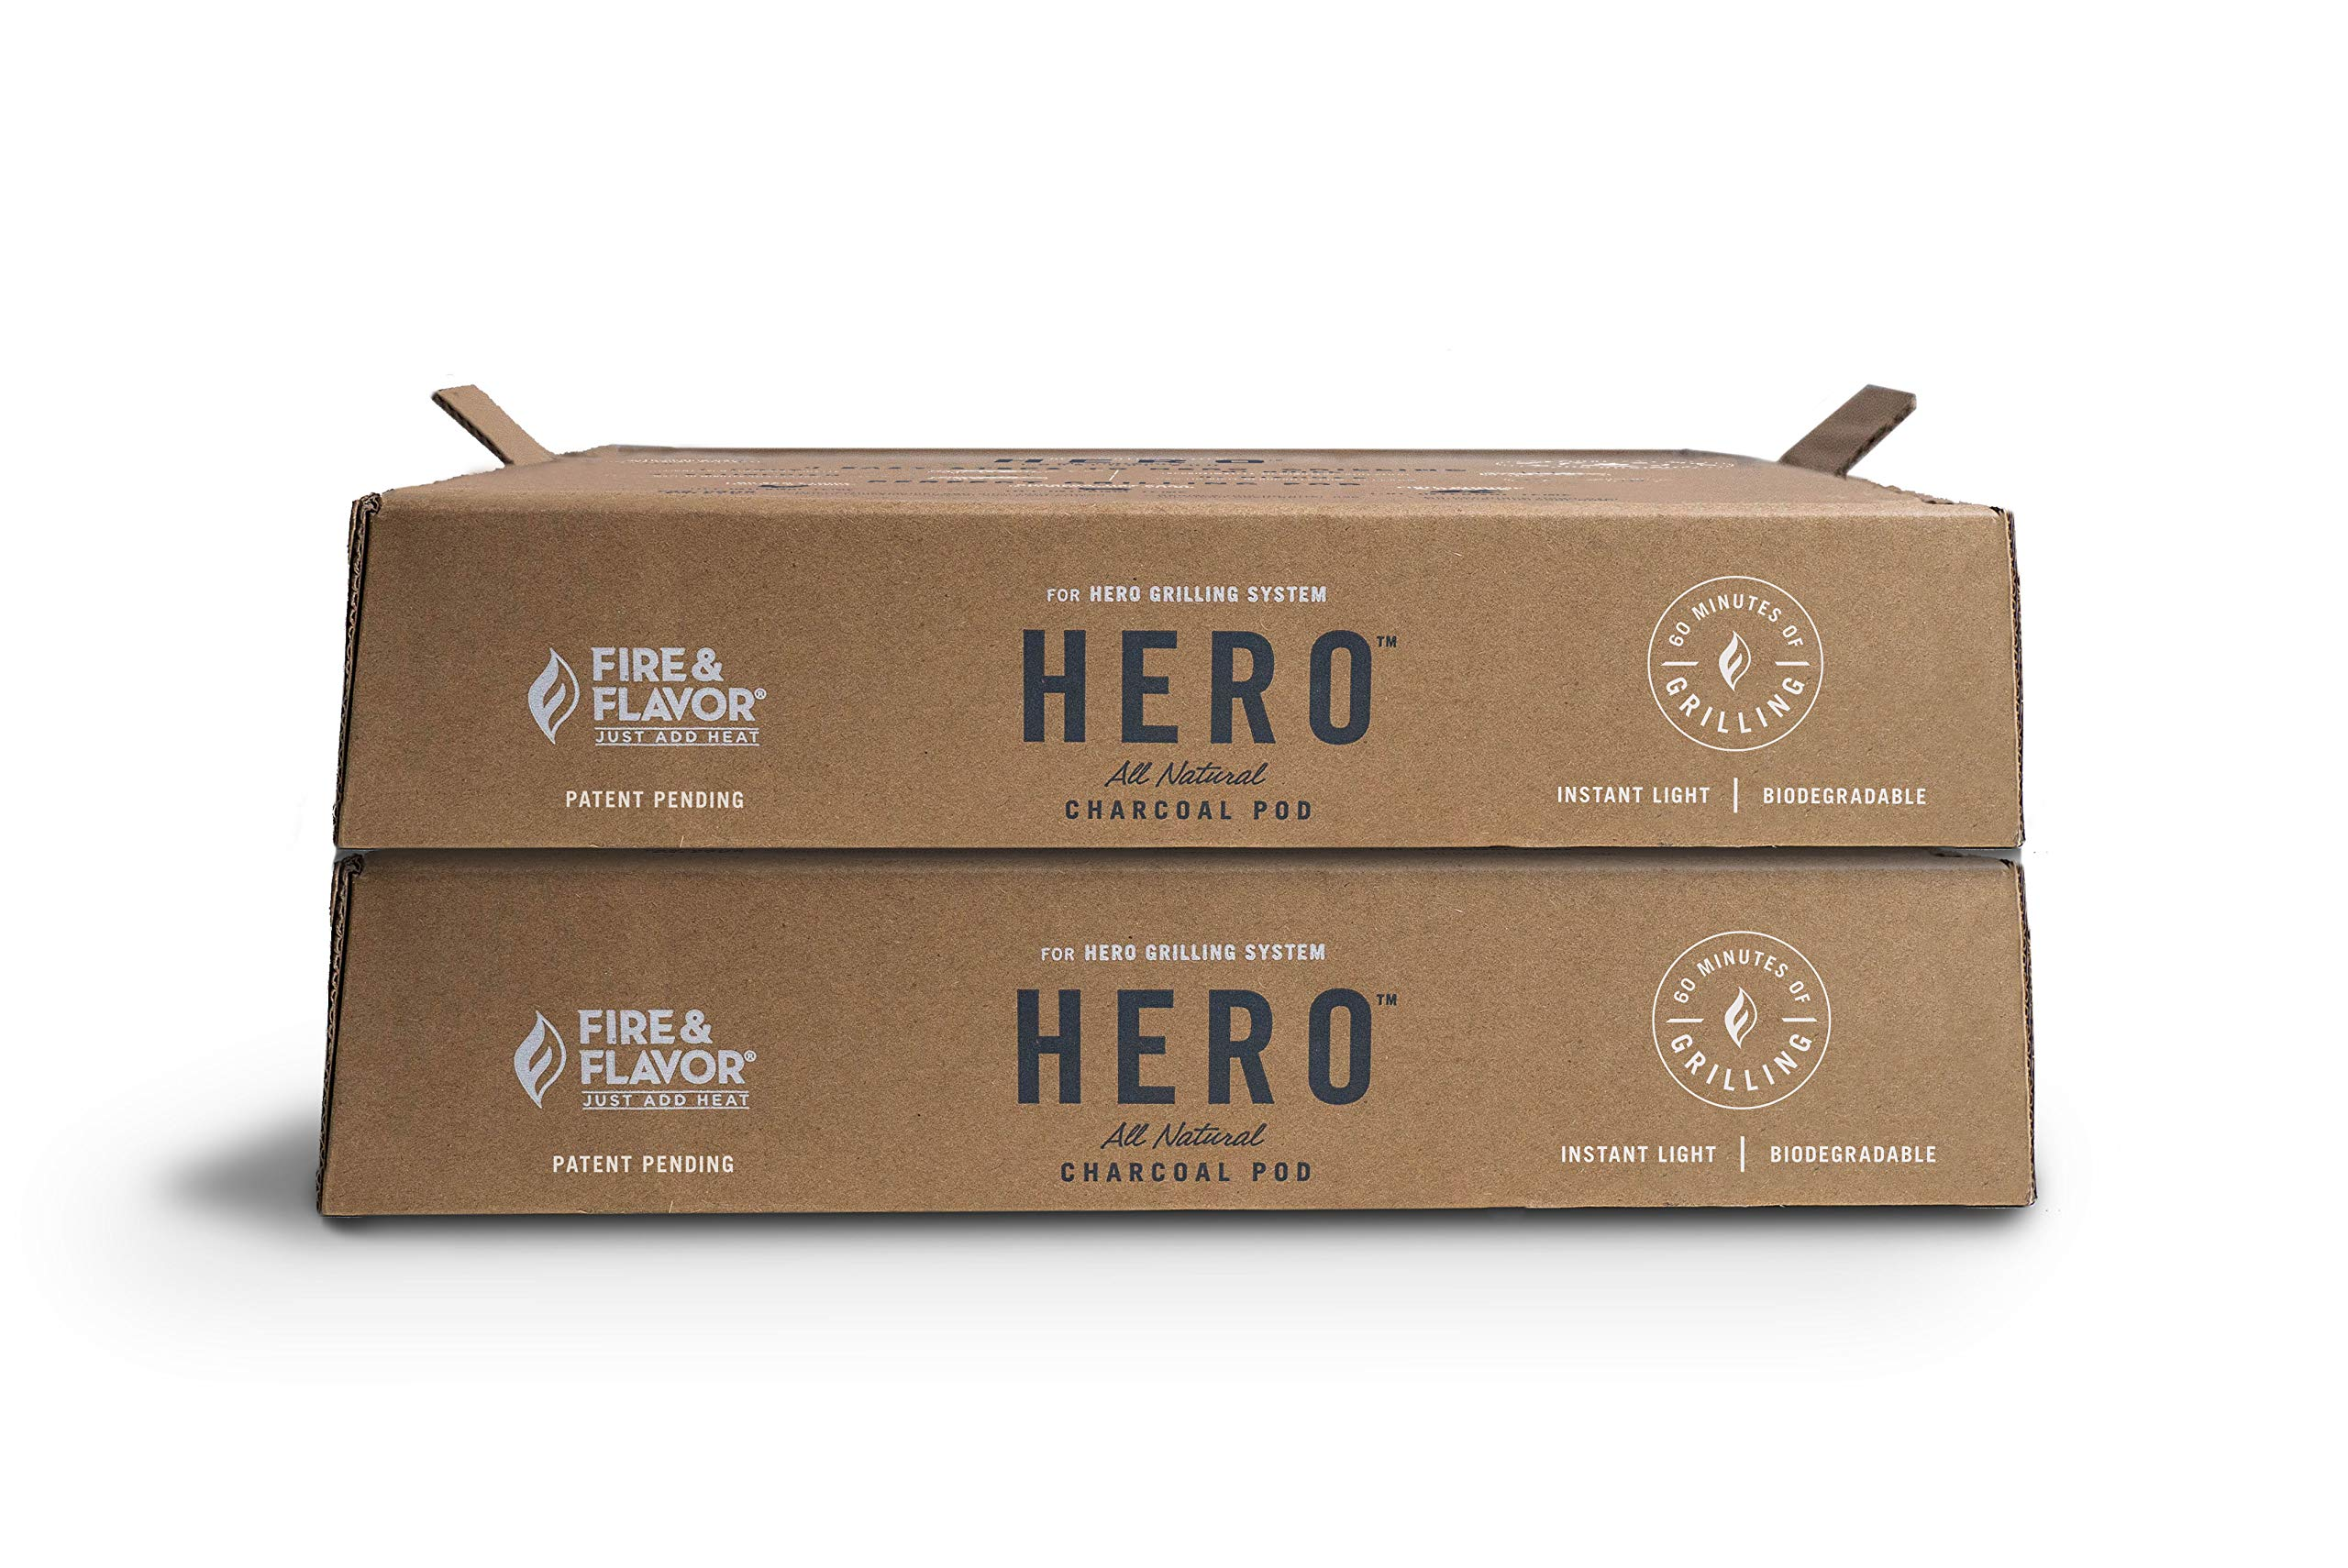 Fire & Flavor HERO Pods Charcoal Grill Pod 2 Pack Refill